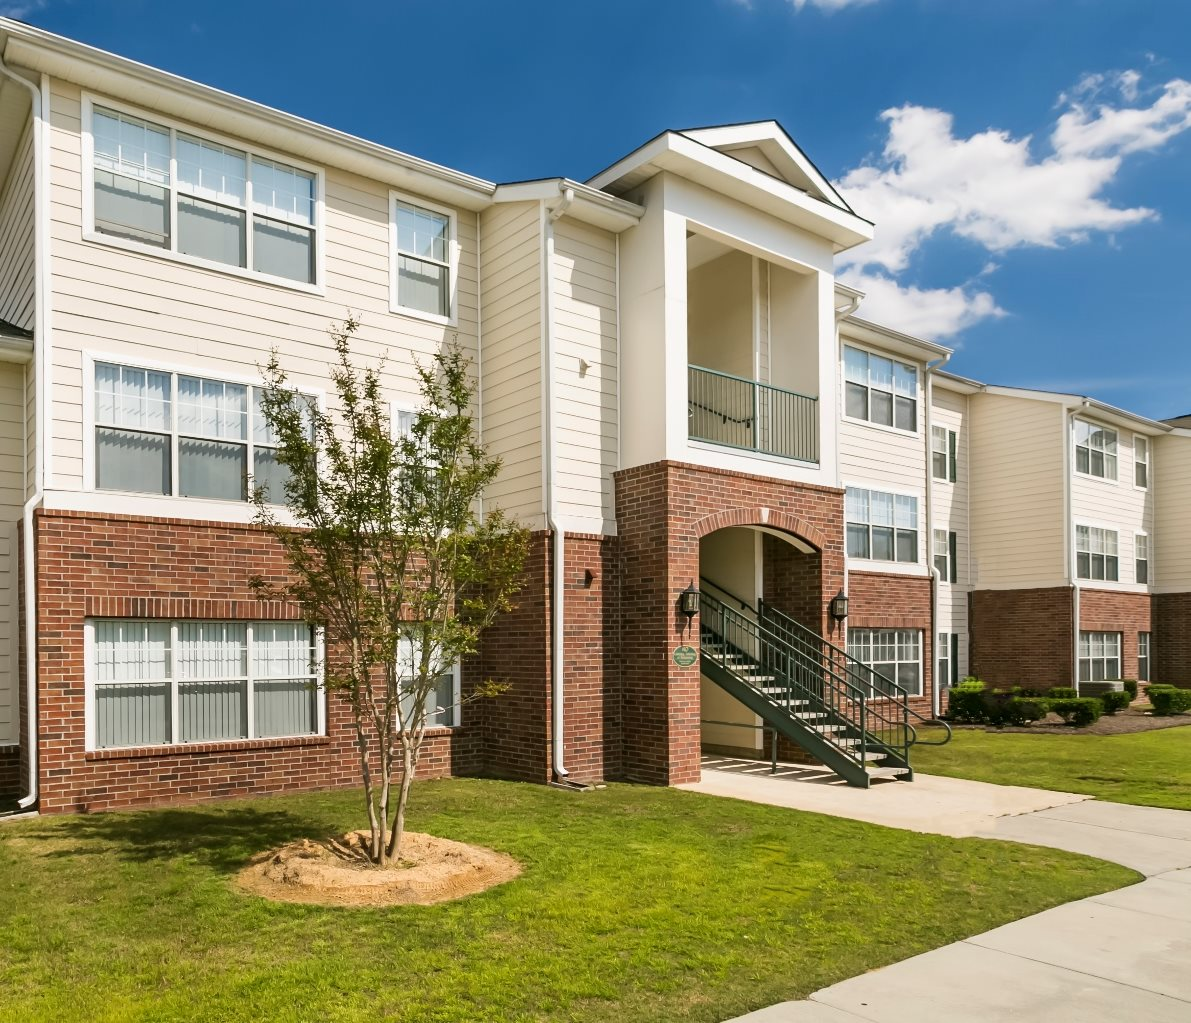 Cheap One Bedroom Apartments Near Me: Apartments In Brunswick, GA